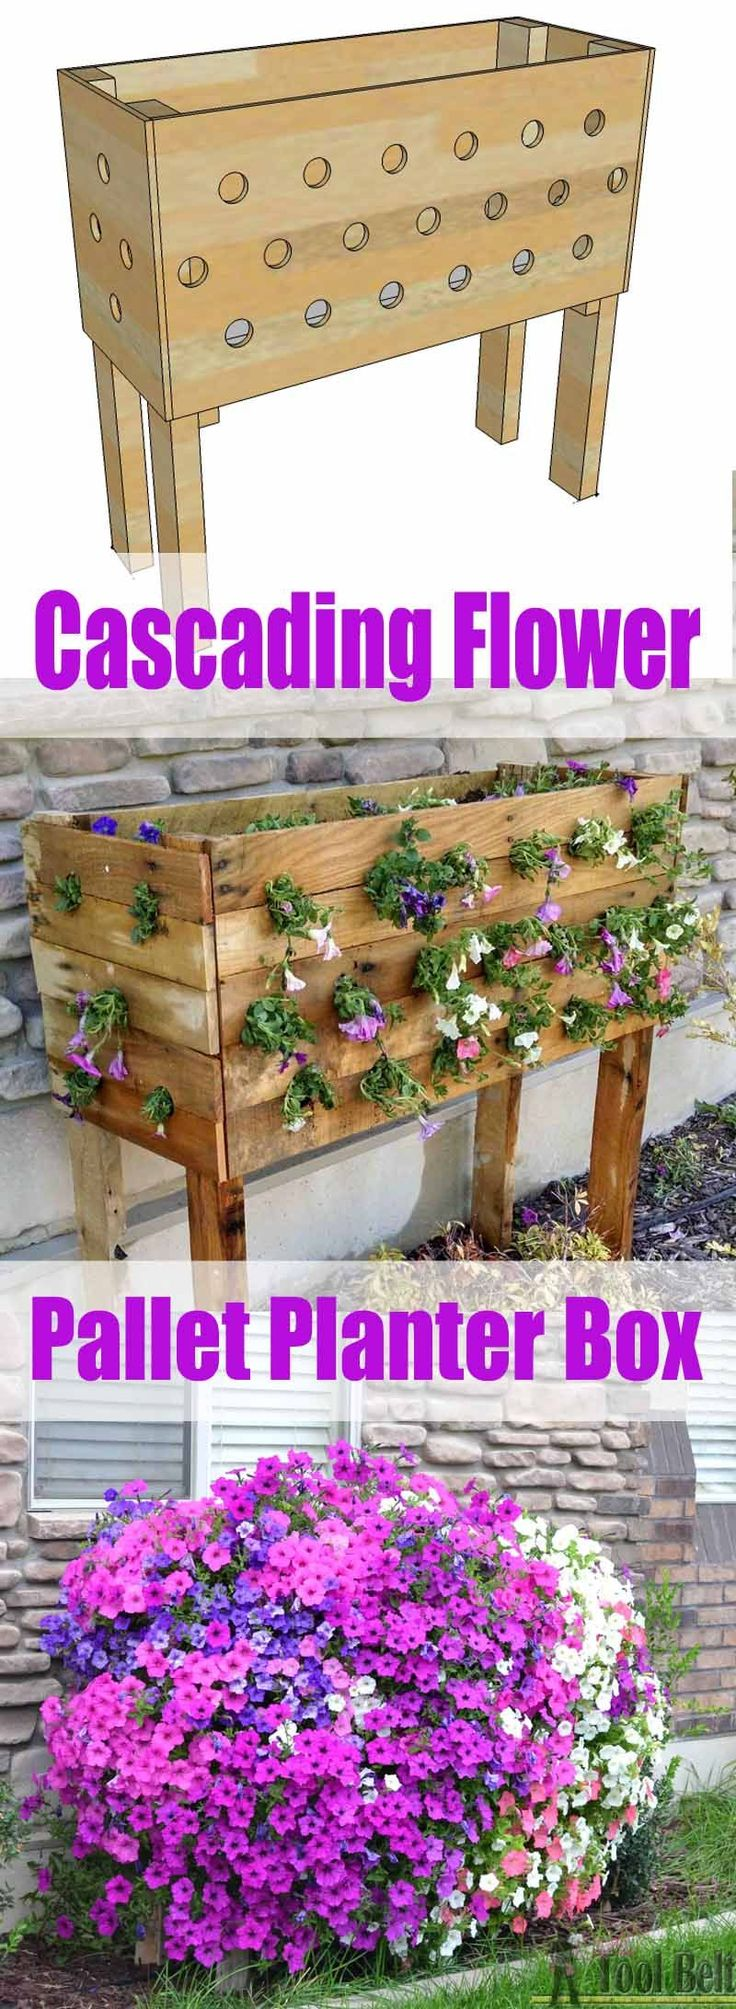 Another great idea for your patio this is absolutely awesome when it flowers. So easy and cheap to make.